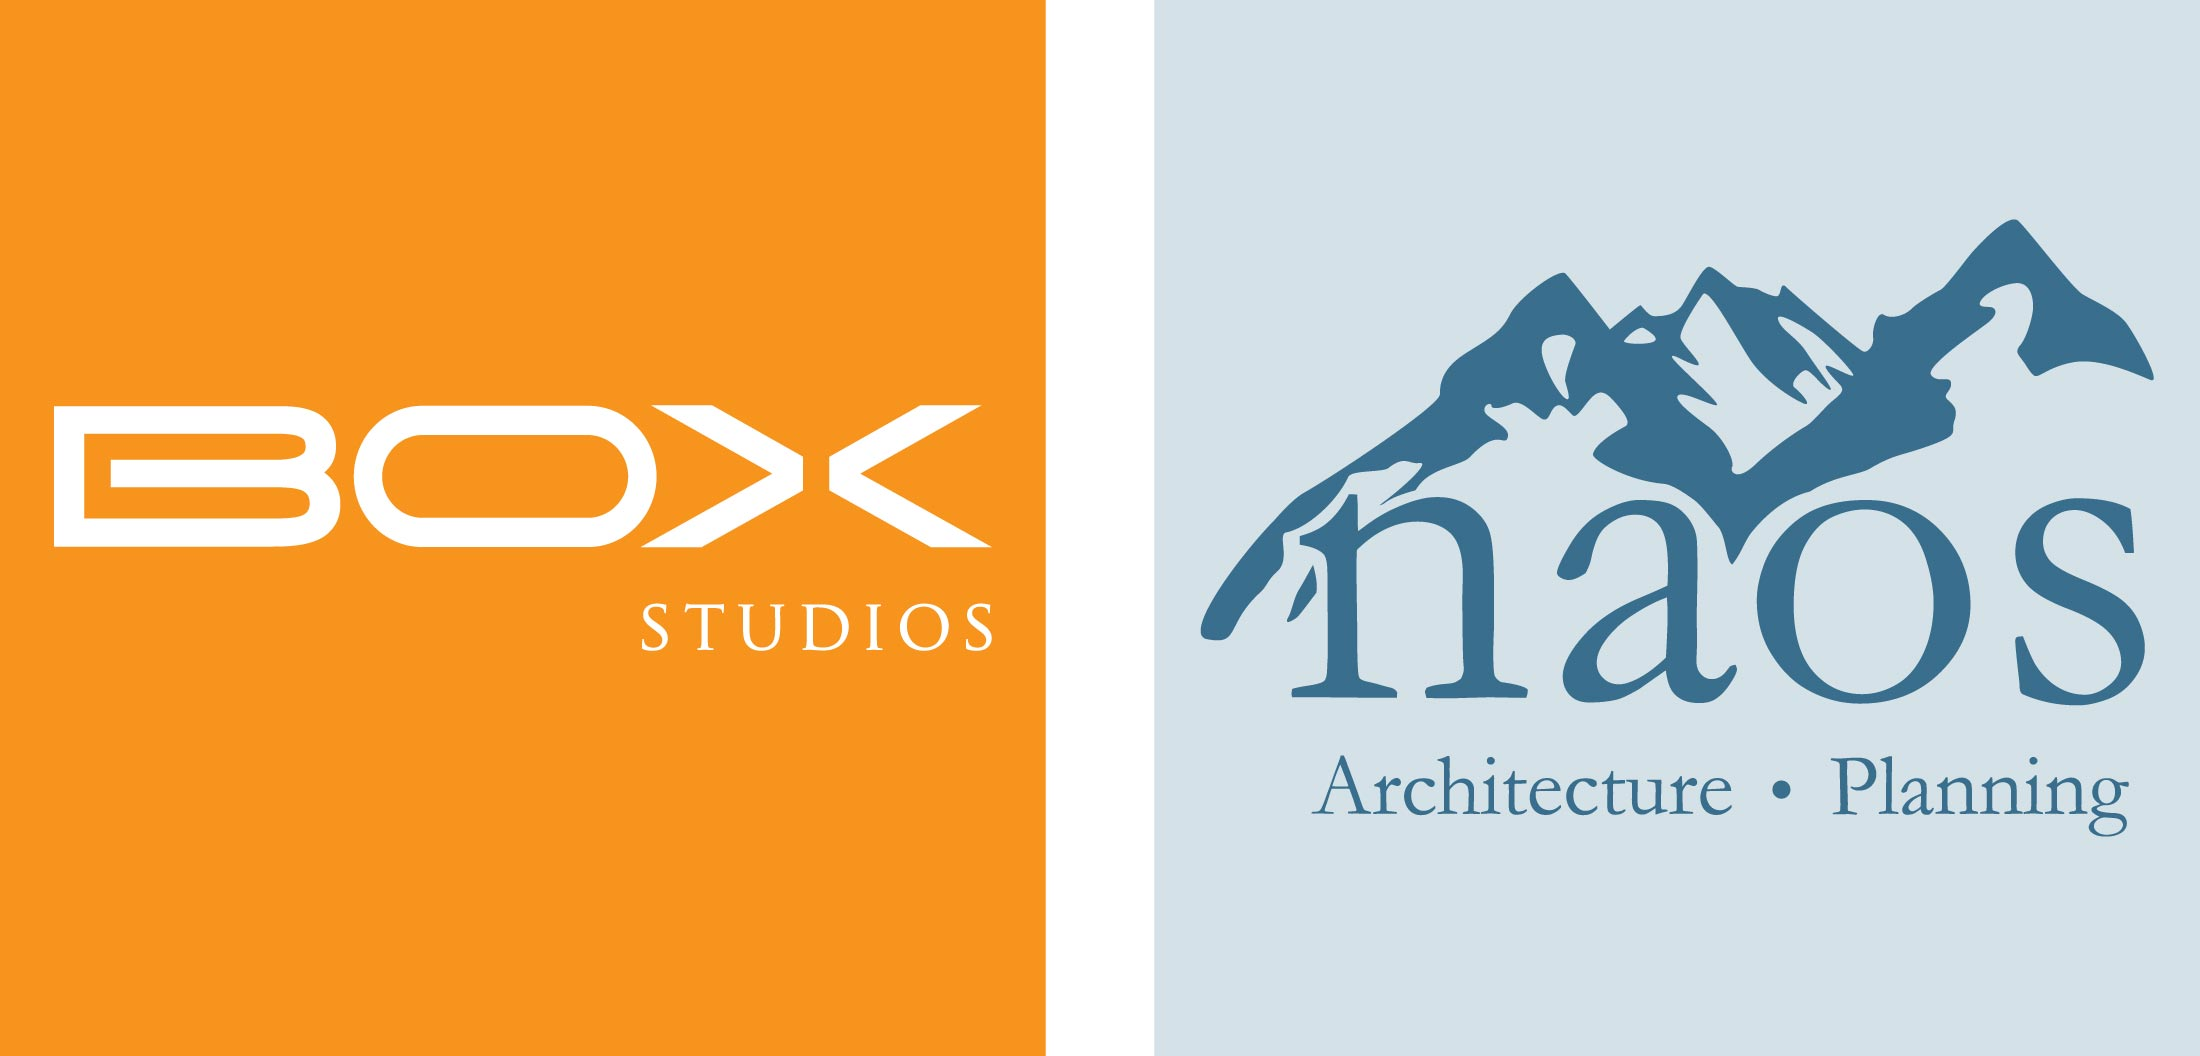 Box Studios and Naos Architecture and Planning